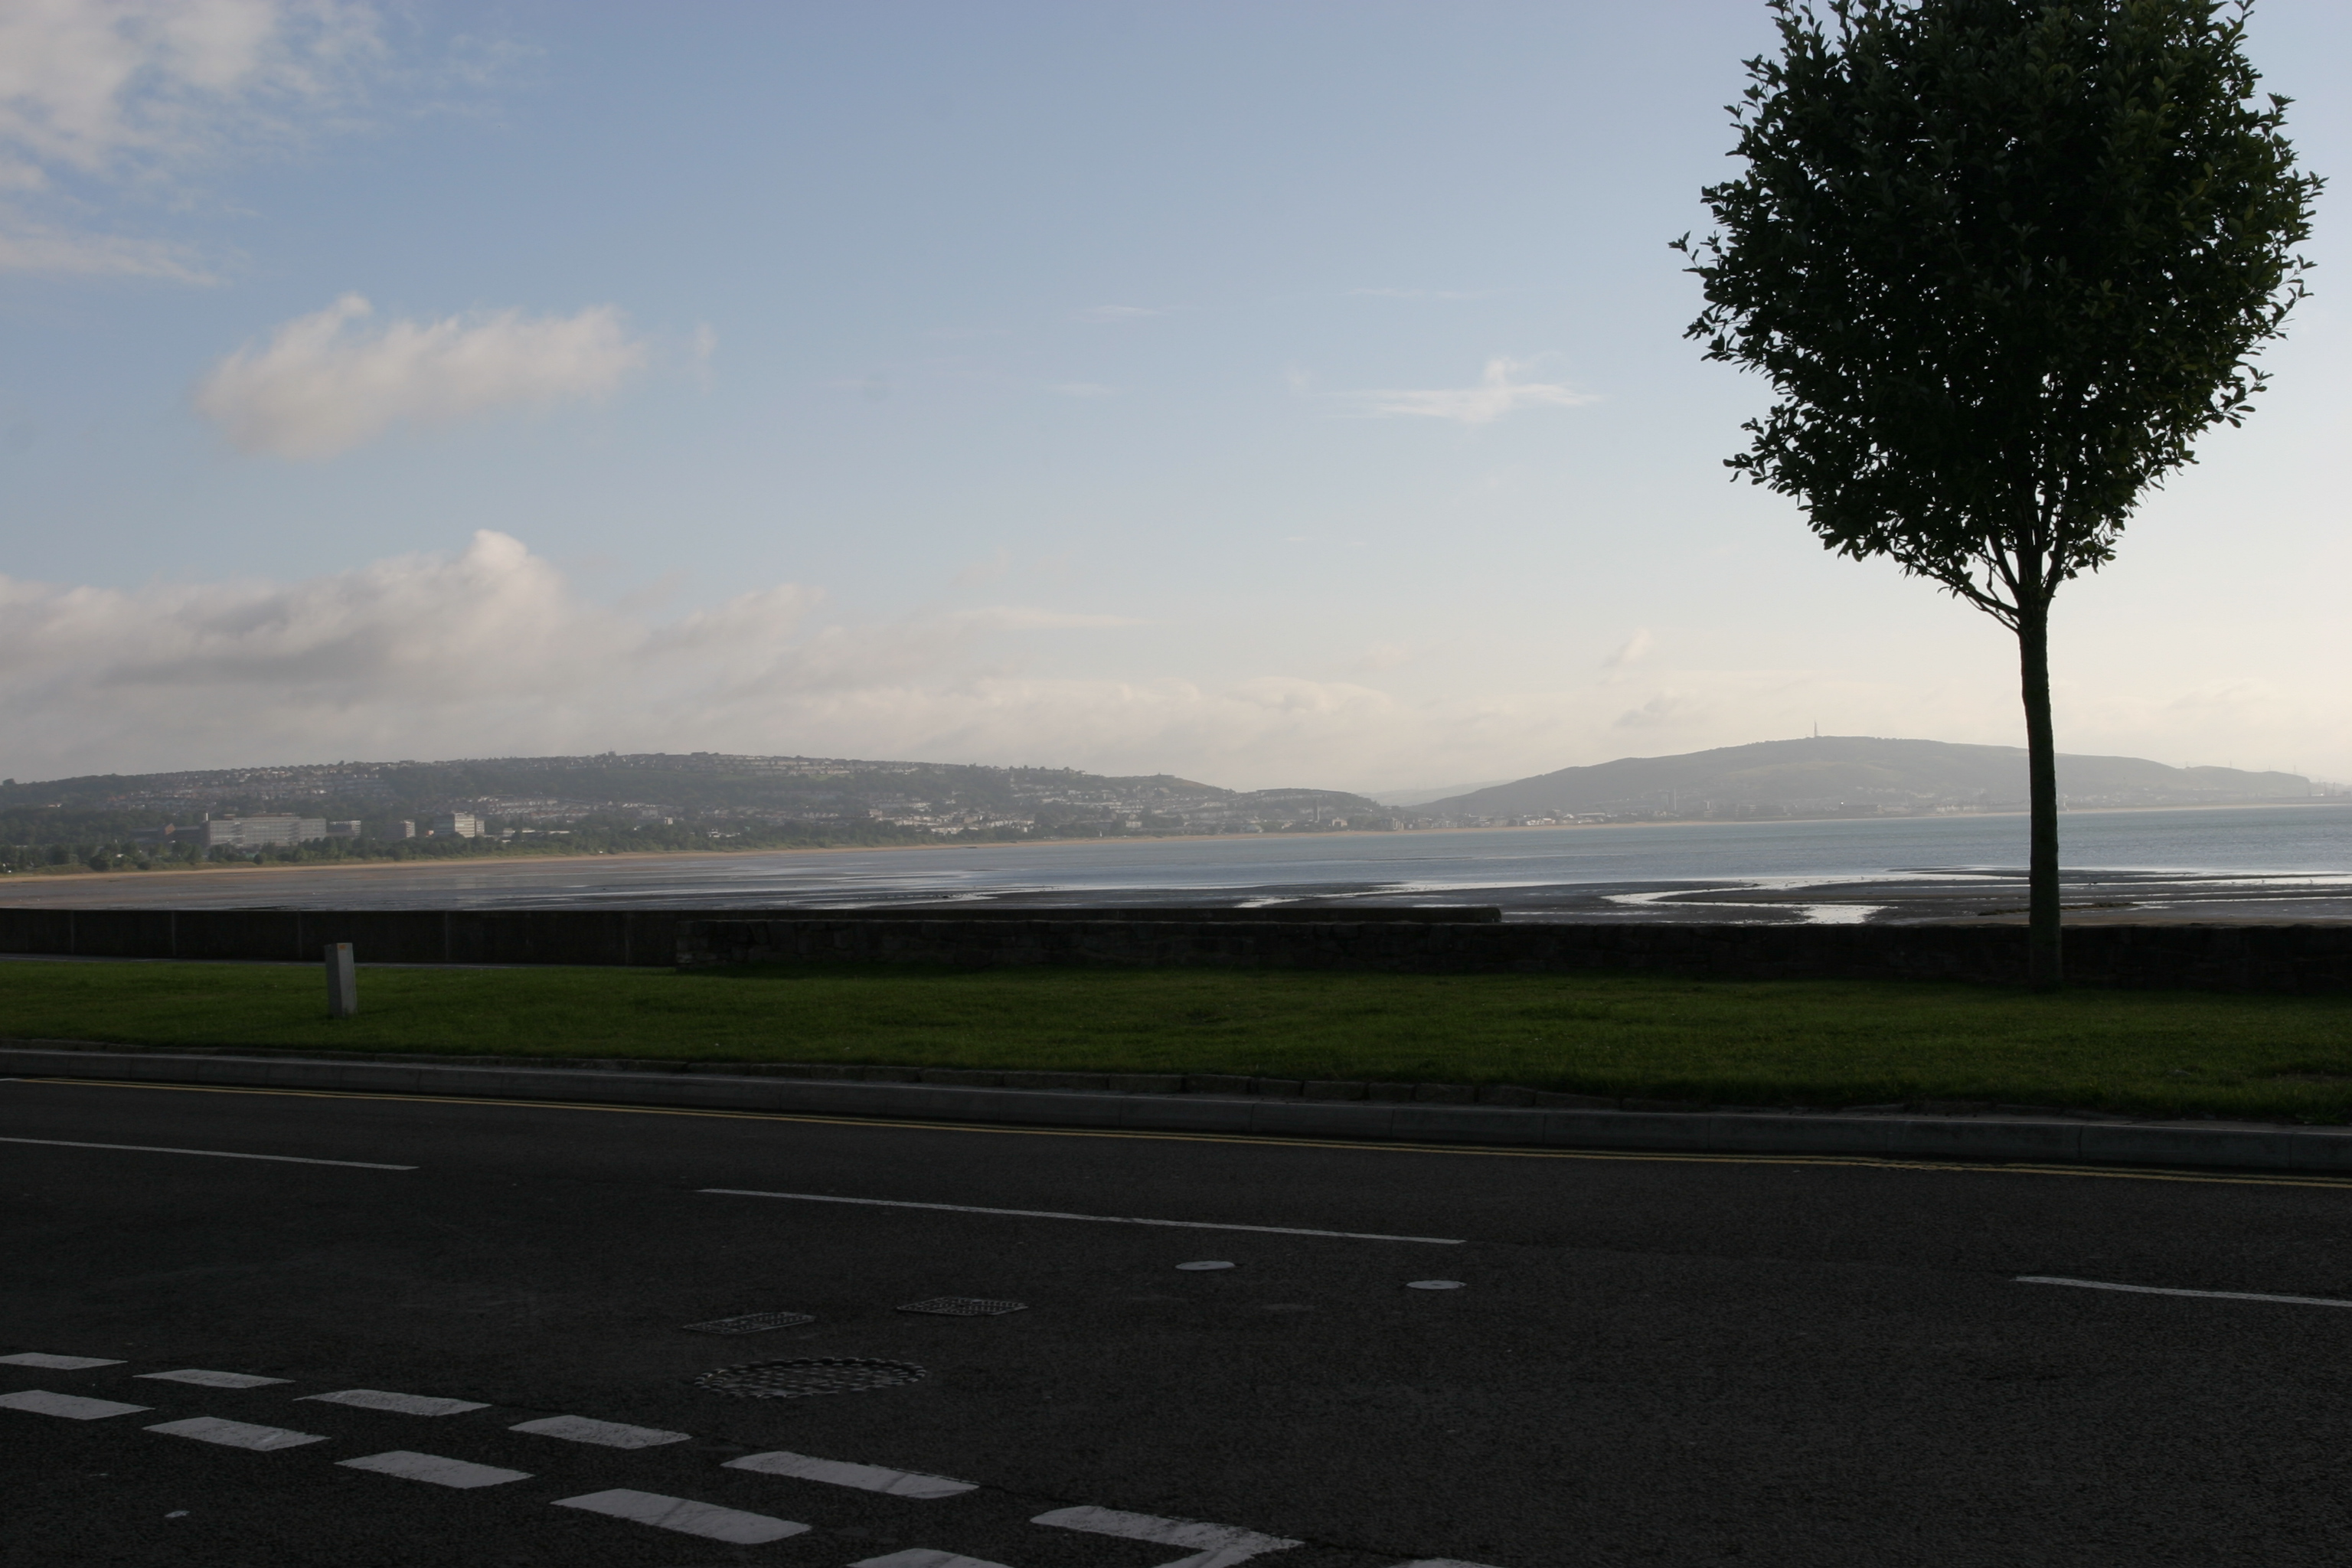 The bay from Mumbles Rd., parts of Swansea are in the background